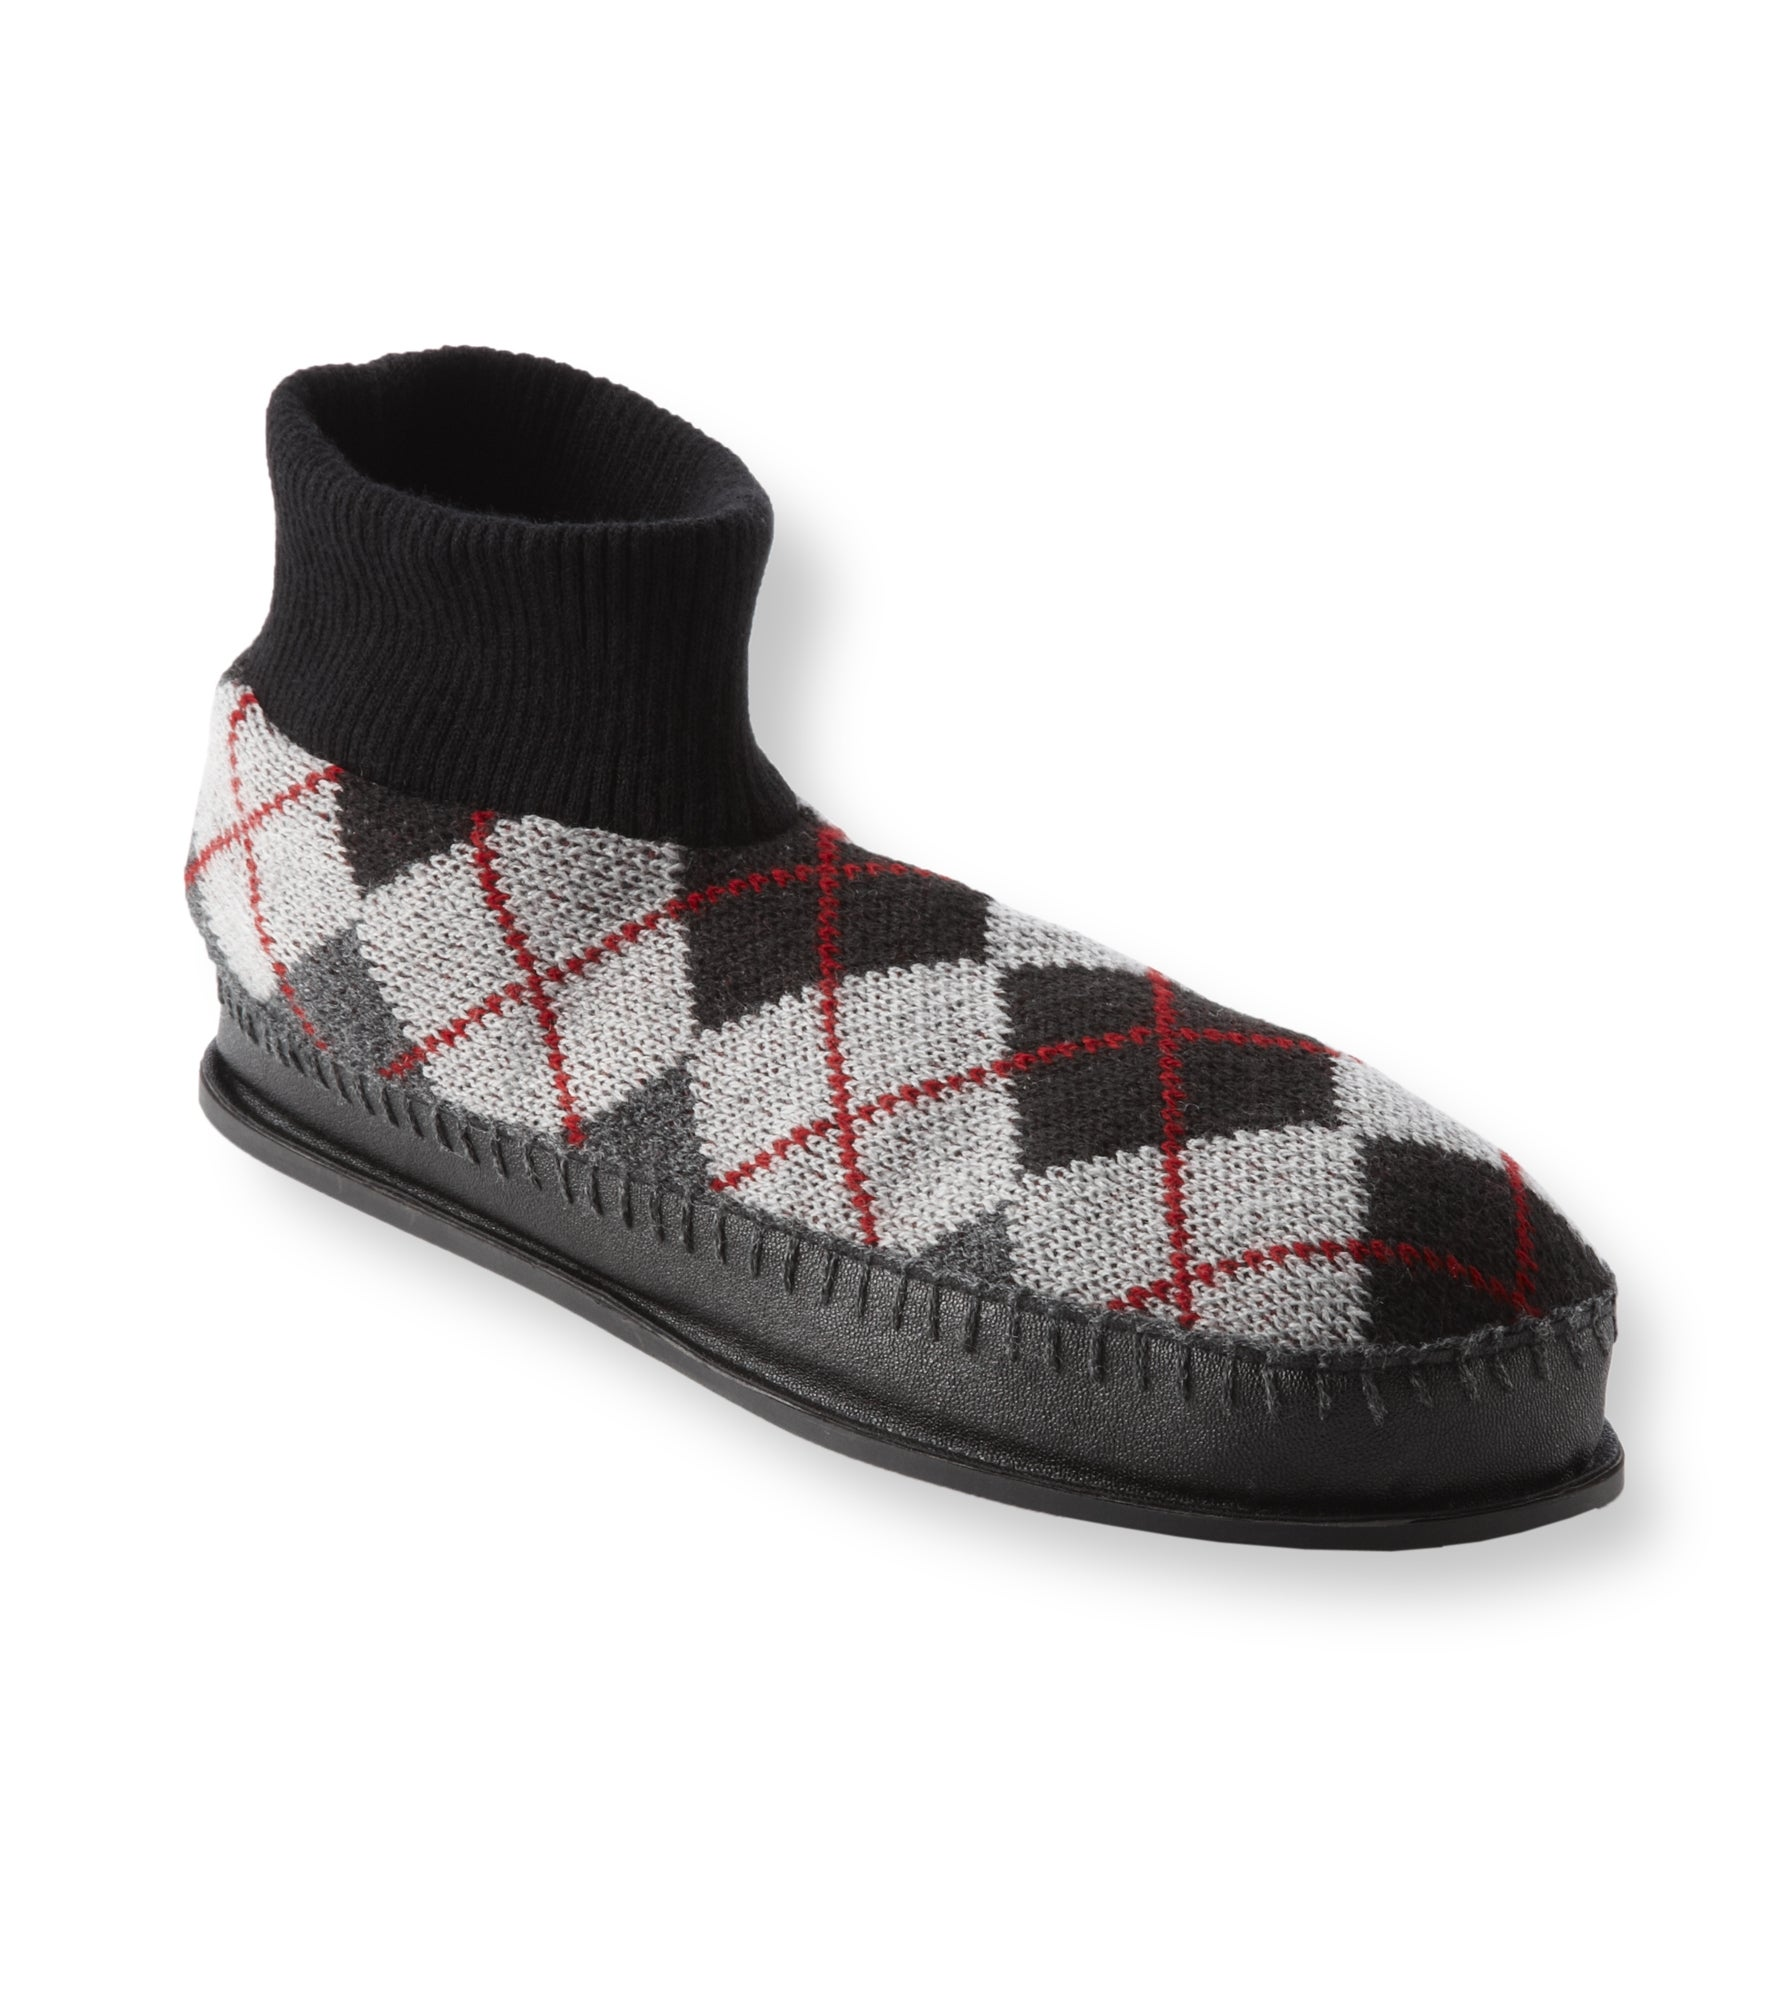 Muk Luks Men's 'Sheldon' Grey Argyle Knit Ankle Slippers